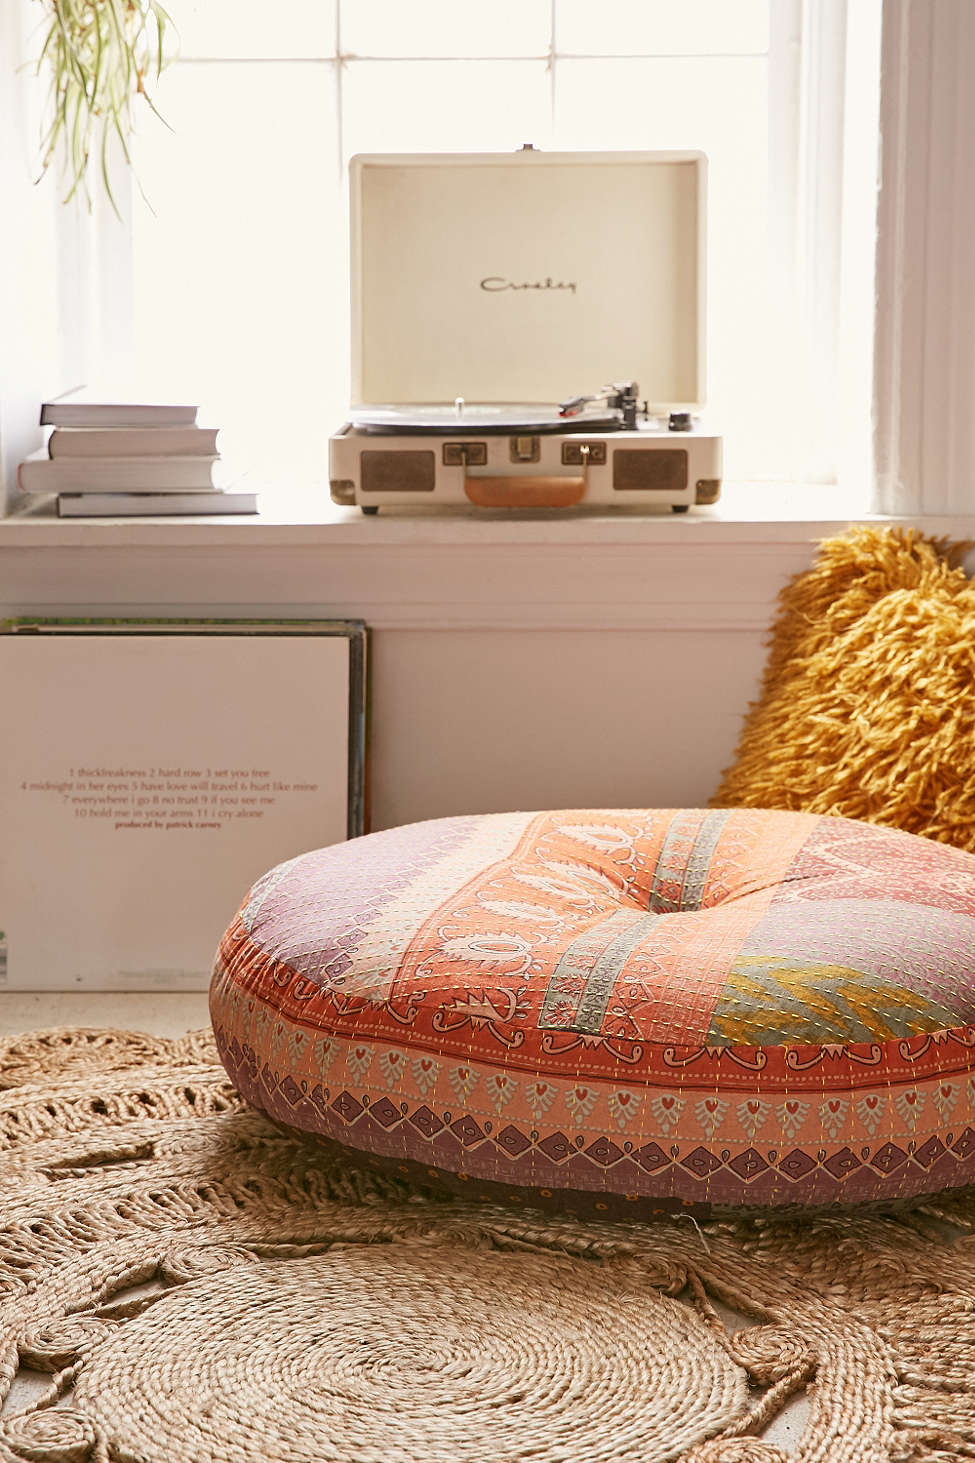 21 Chic And Cozy Floor Pillows